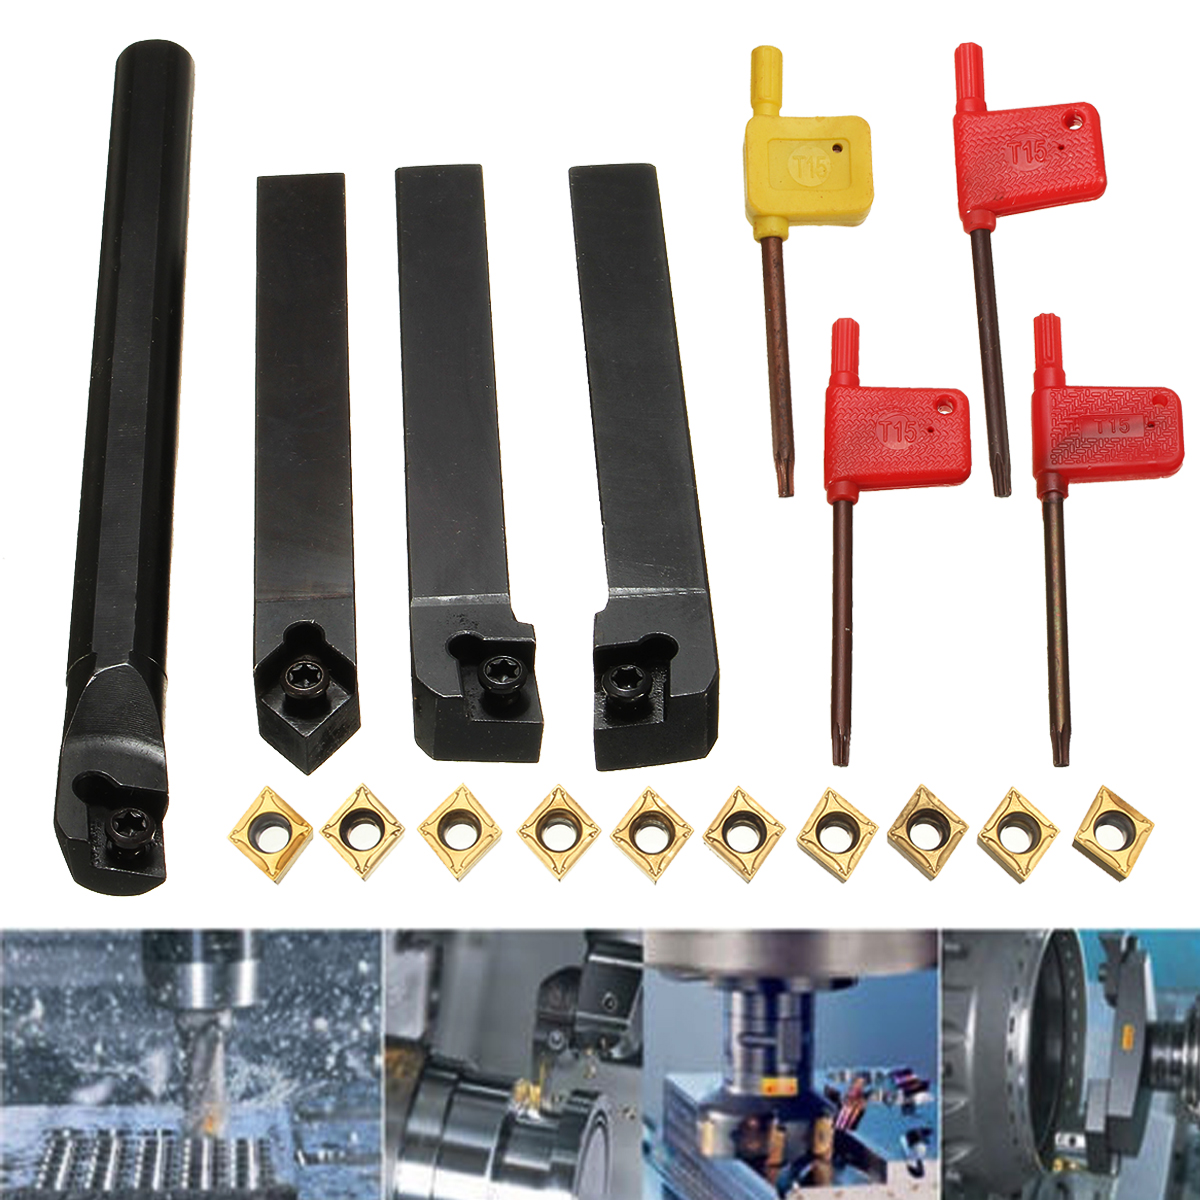 10pcs CCMT09T304 Carbide Insert+4pcs Lathe Turning Tool Holder Set+4pcs Wrench For Lathe Turning Tool Machine Tool Sets